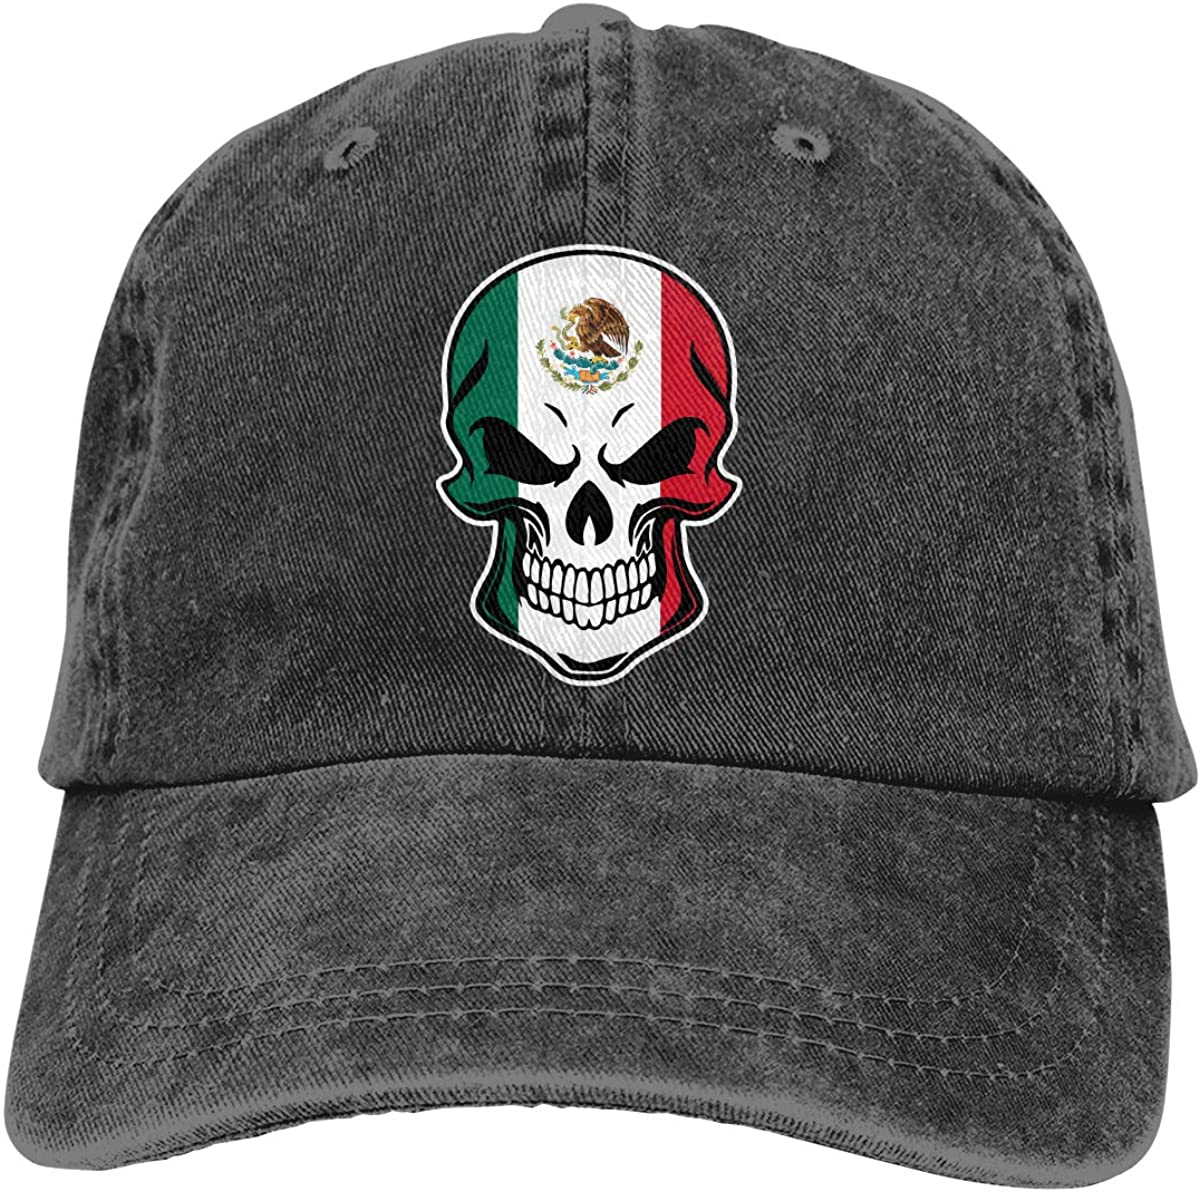 Mexico Flag Skull-1 Adult Custom Denim Outdoor Sports Hat Adjustable Baseball Cap